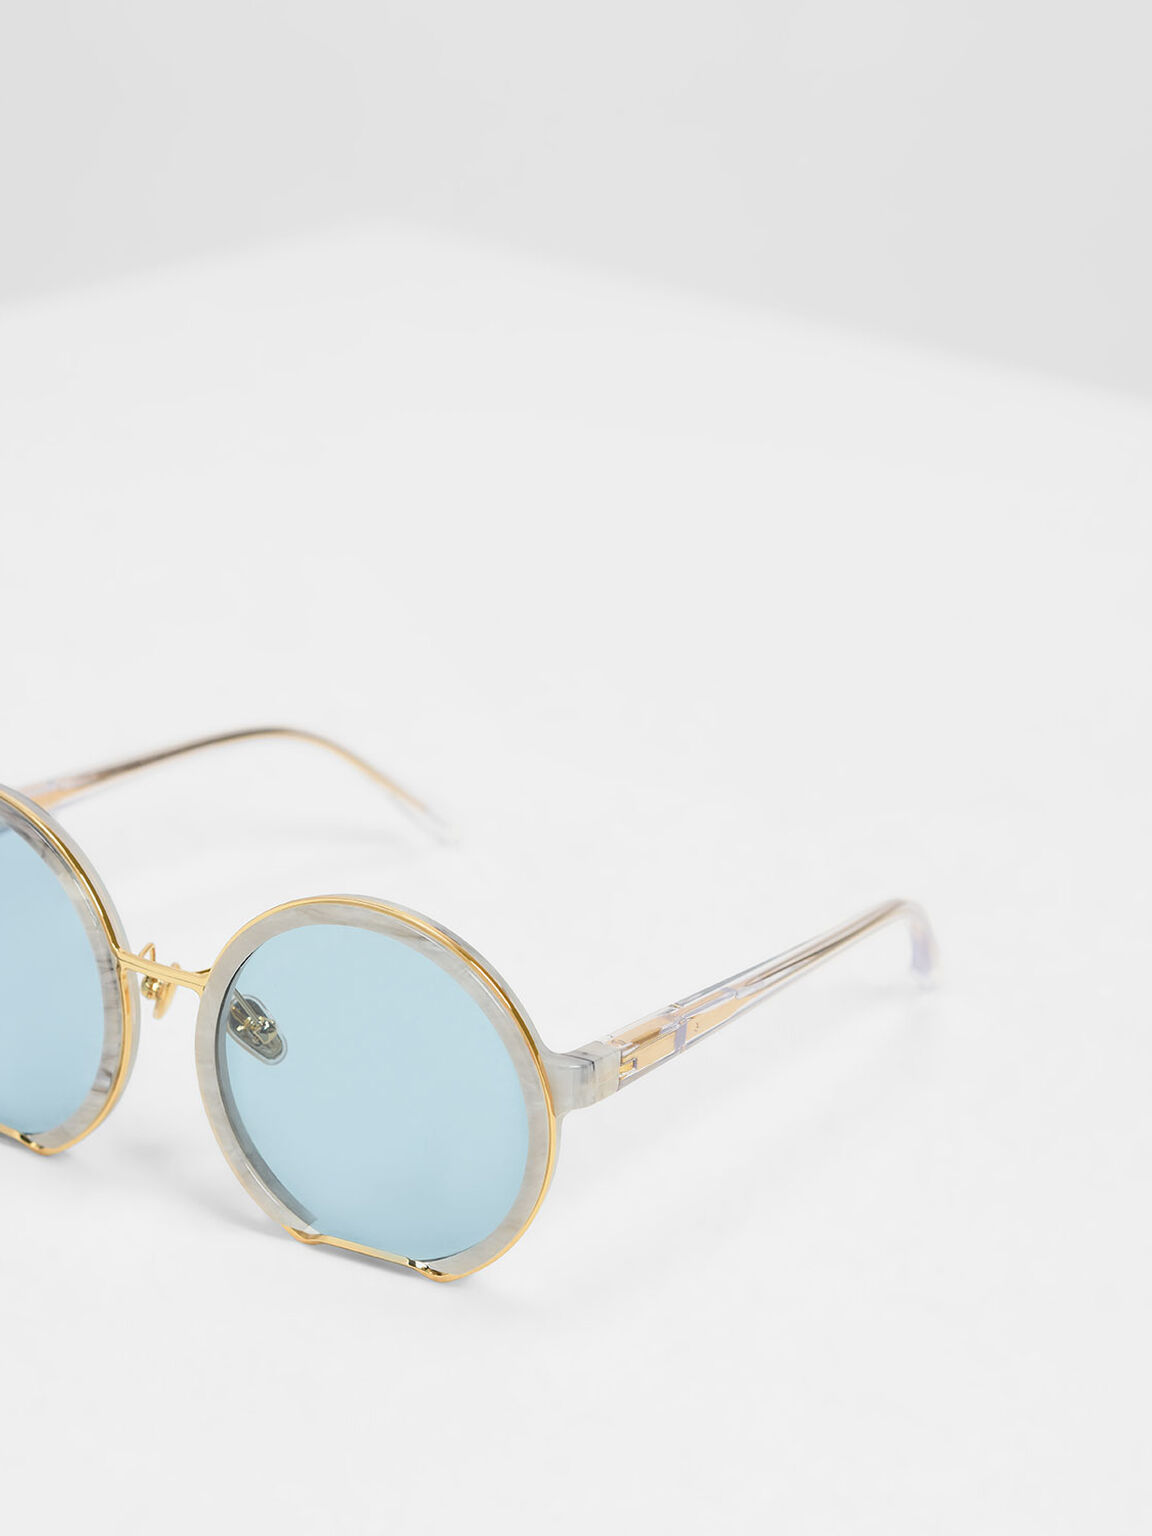 Cut Off Frame Round Sunglasses, White, hi-res